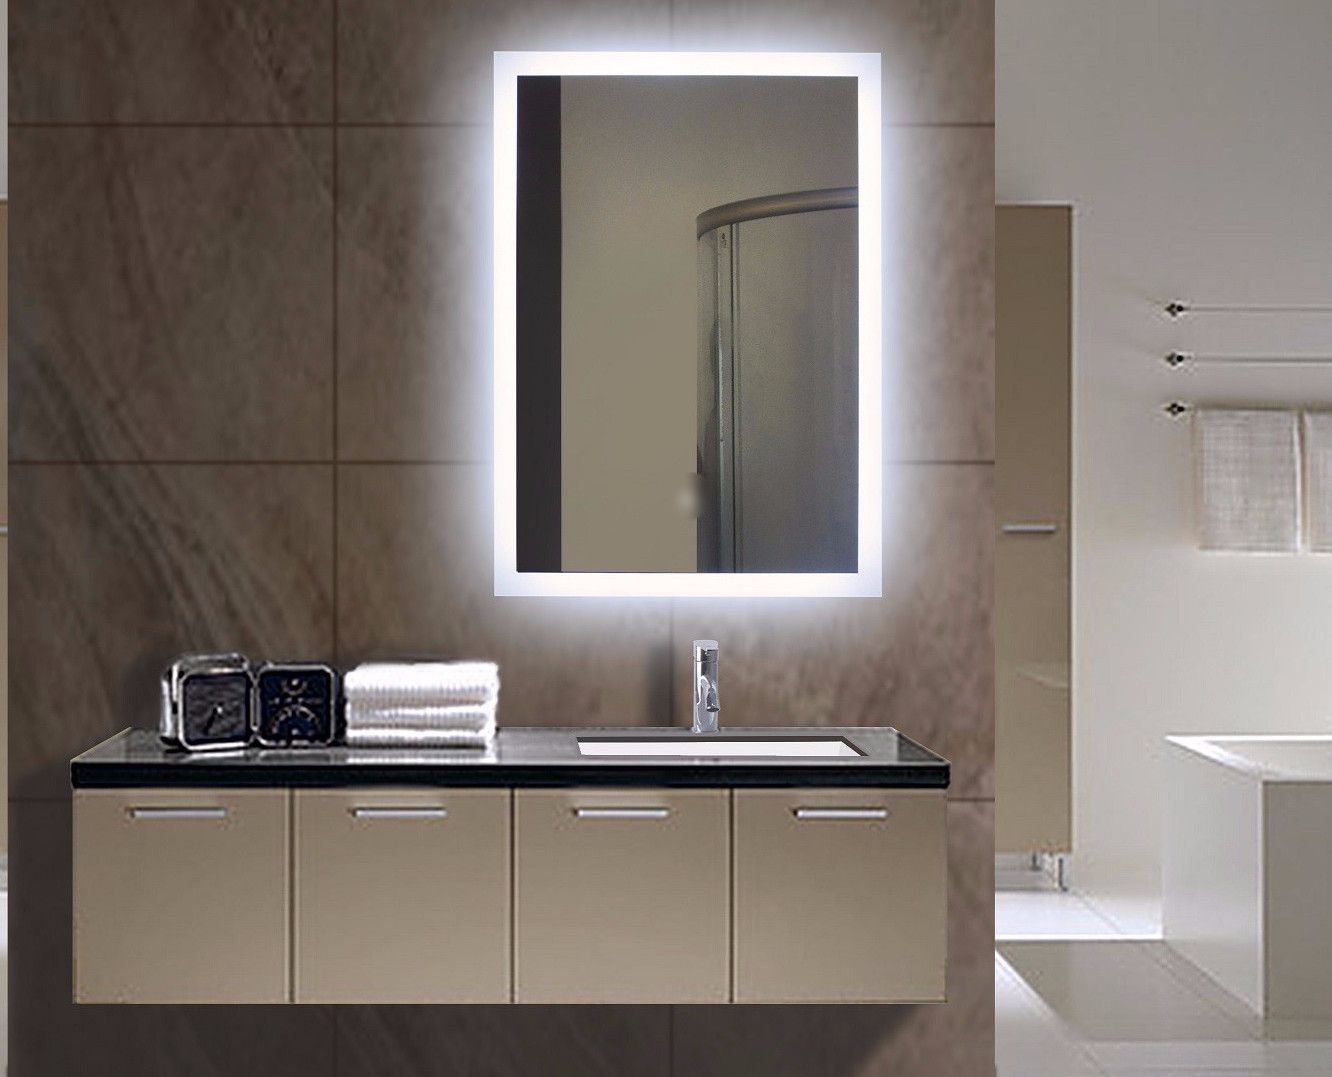 Paris Mirror Rectangle Bathroom Mirror With Led Backlights In 2018: BACKLIT MIRROR RECTANGLE 24 X 32 In